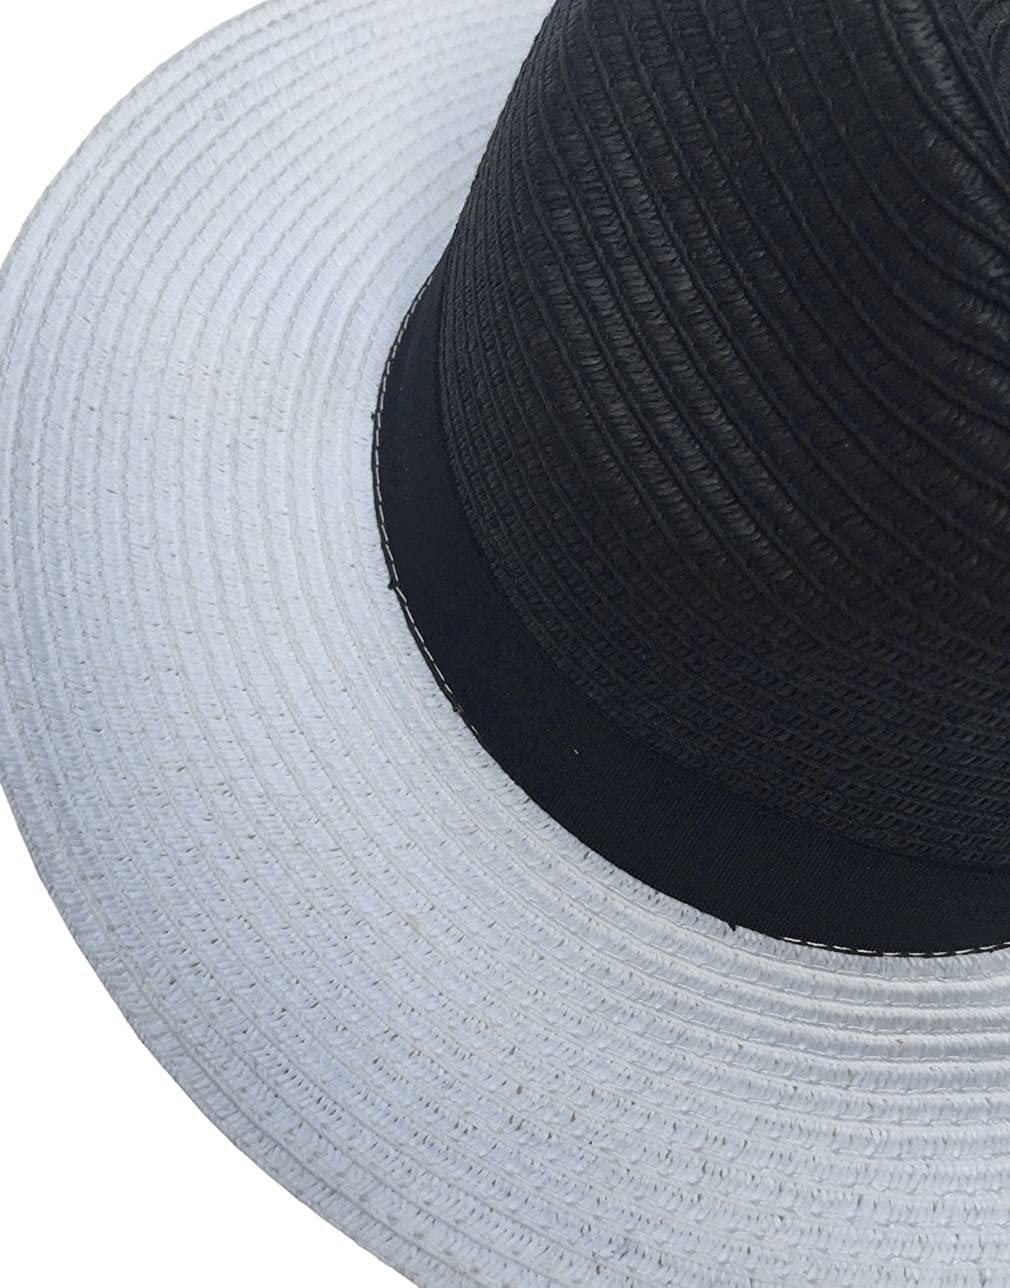 Jixin4you Women Men Summer Beach Panama Straw Cap Sunhat HB05